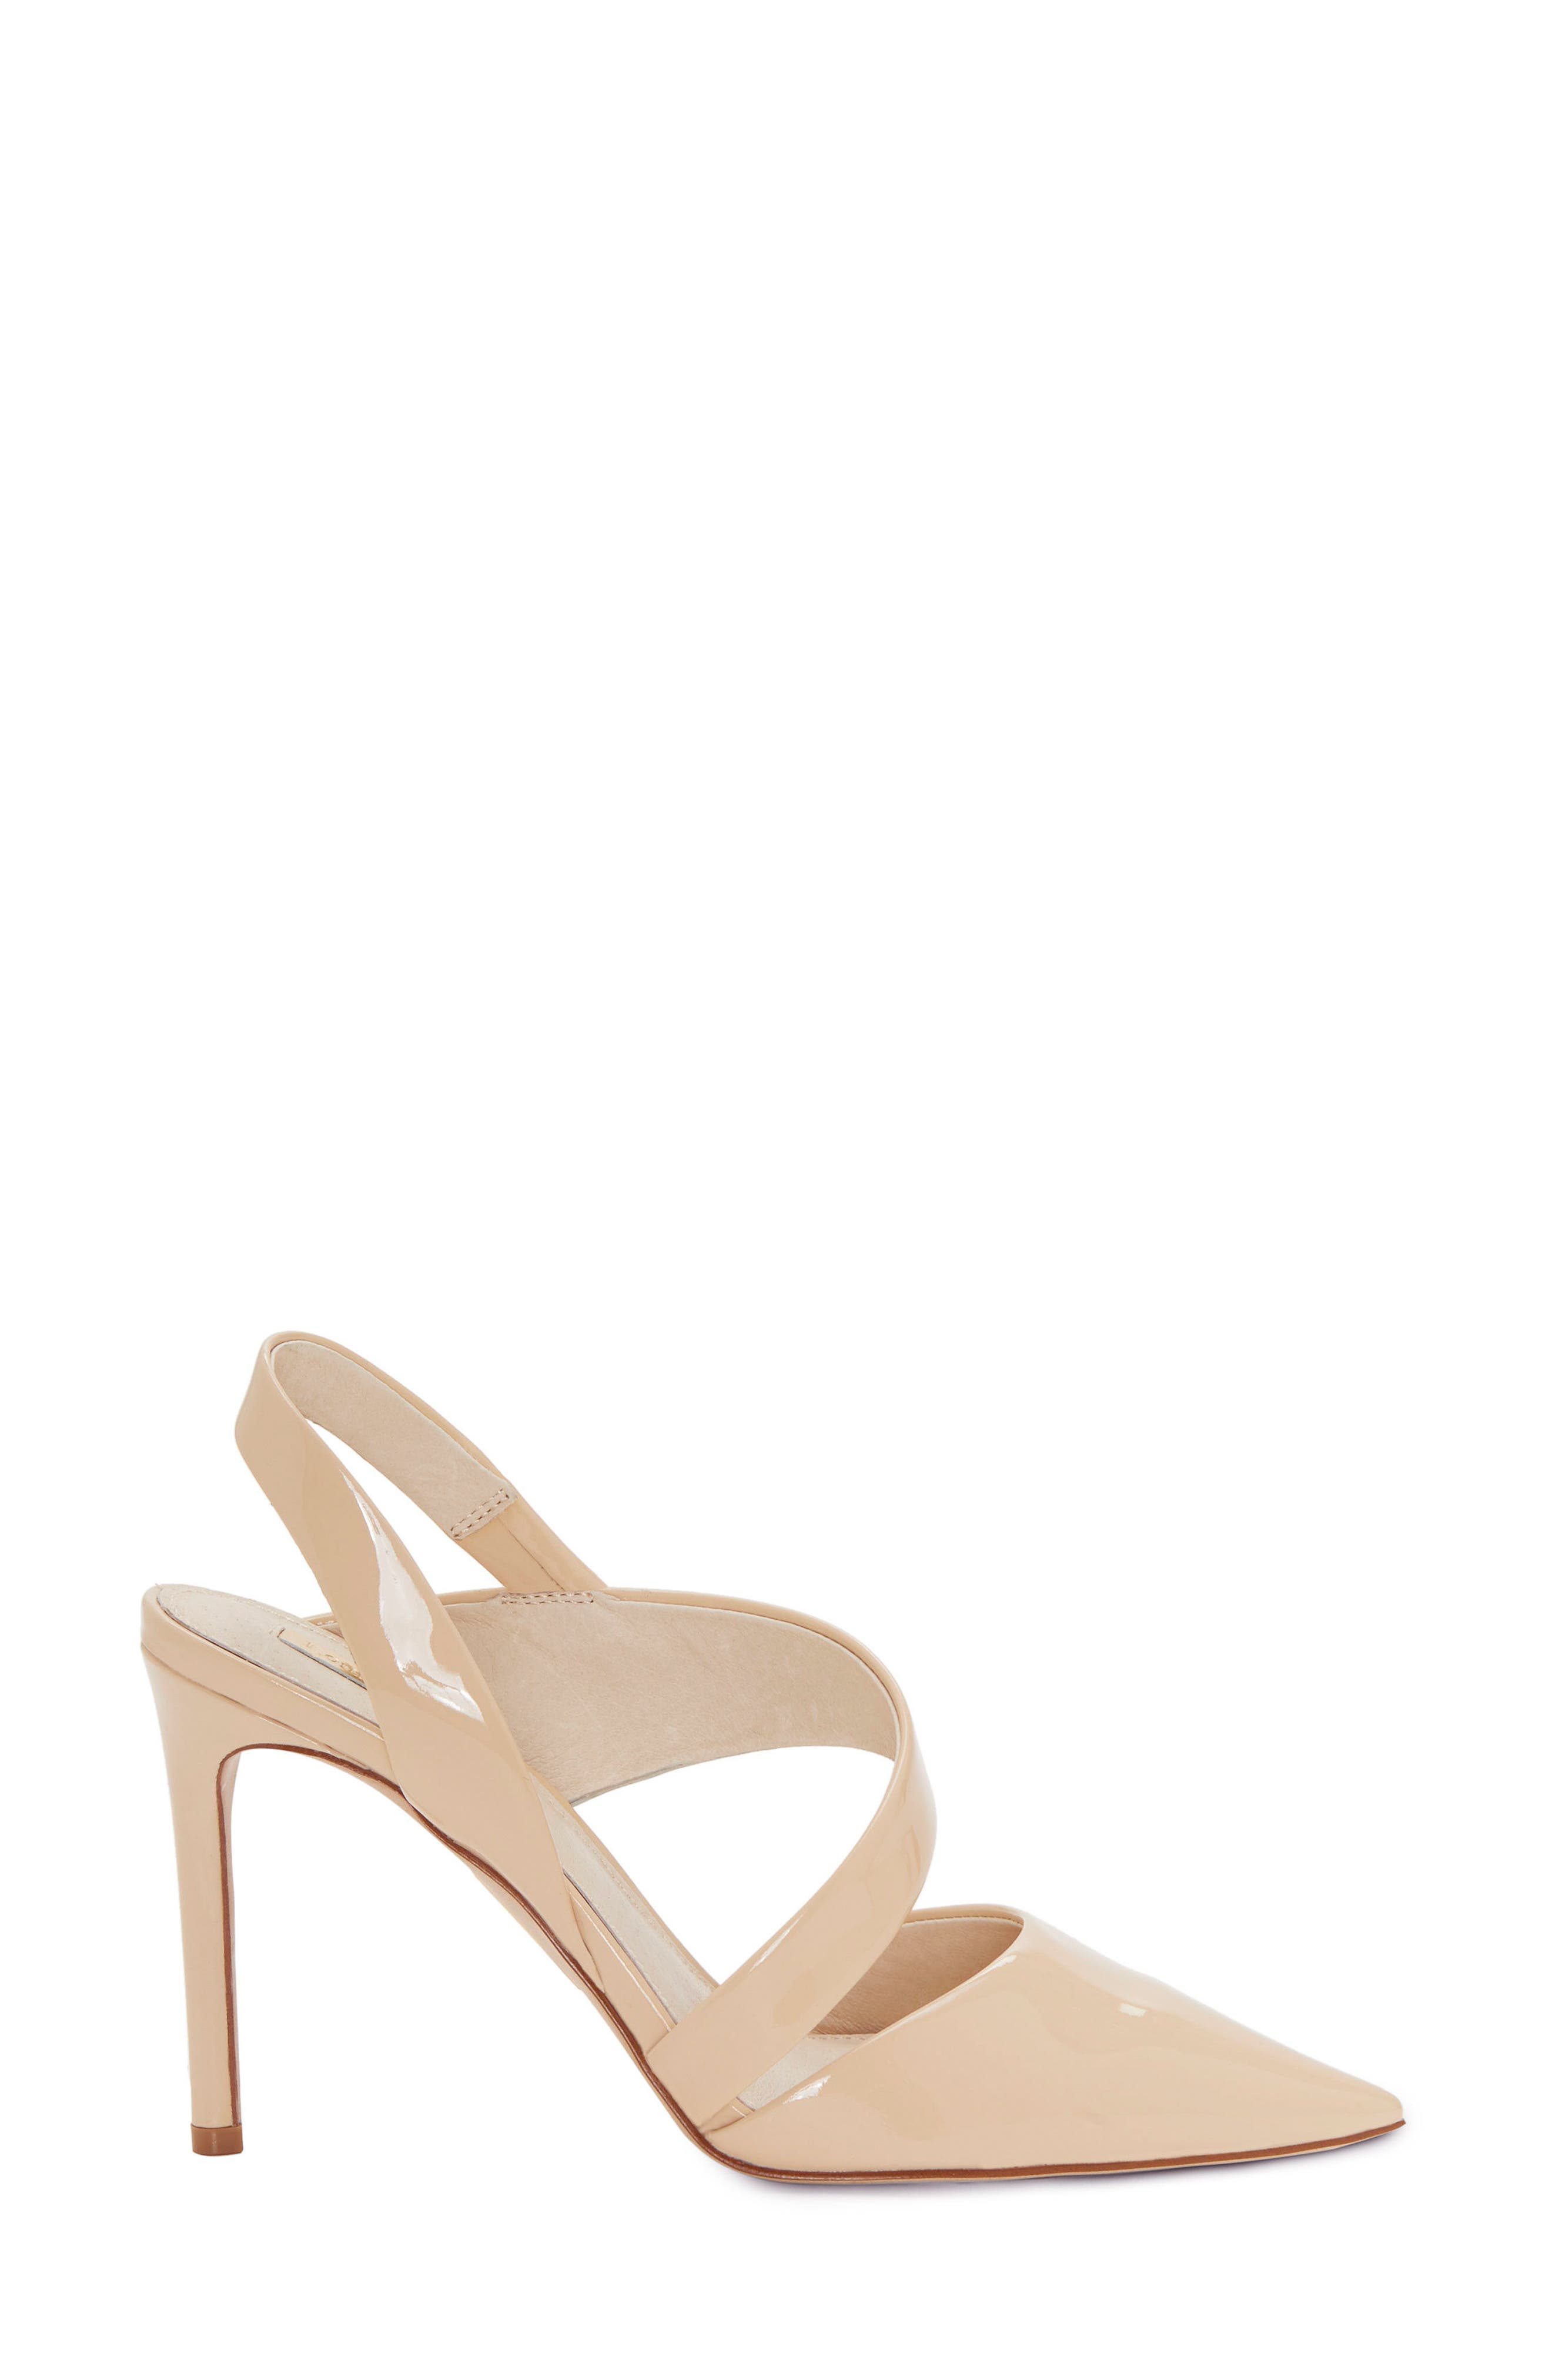 Jerry Pointy Toe Slingback Pump,                             Alternate thumbnail 3, color,                             Odessa Patent